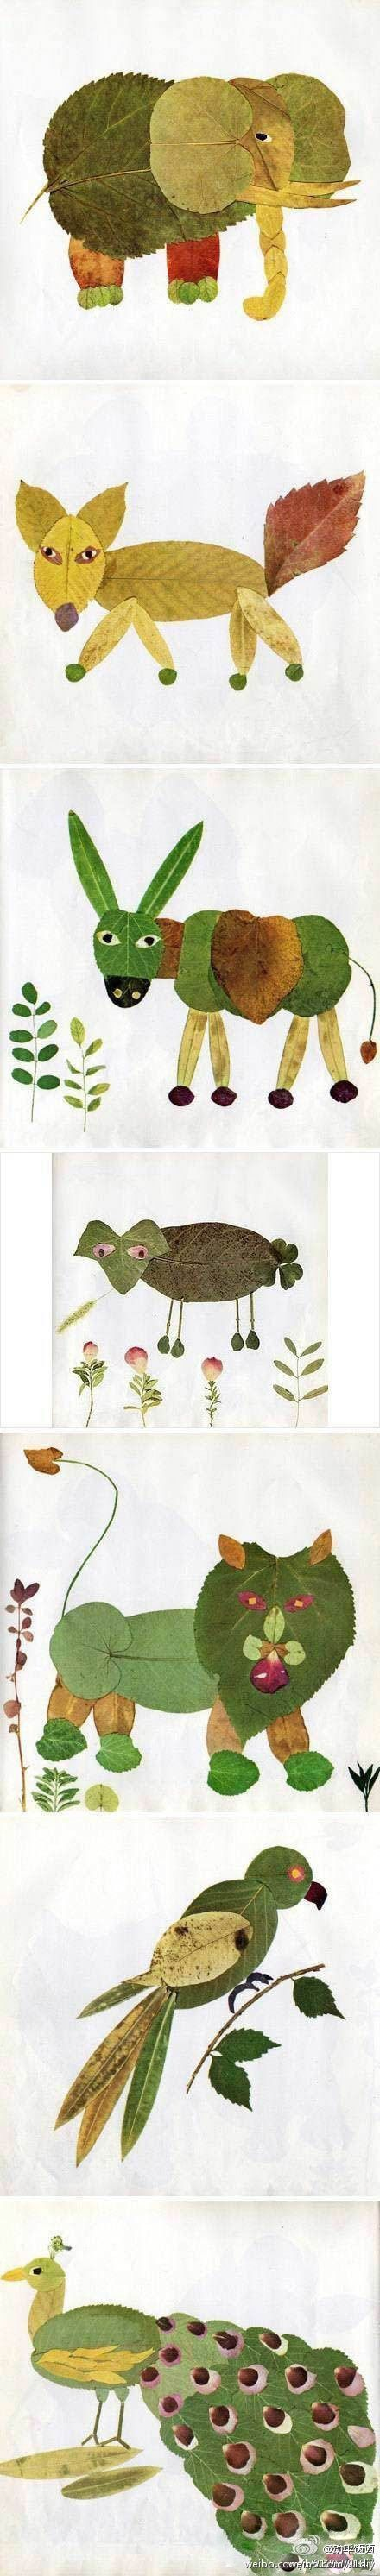 fall crafts for kids with leaves